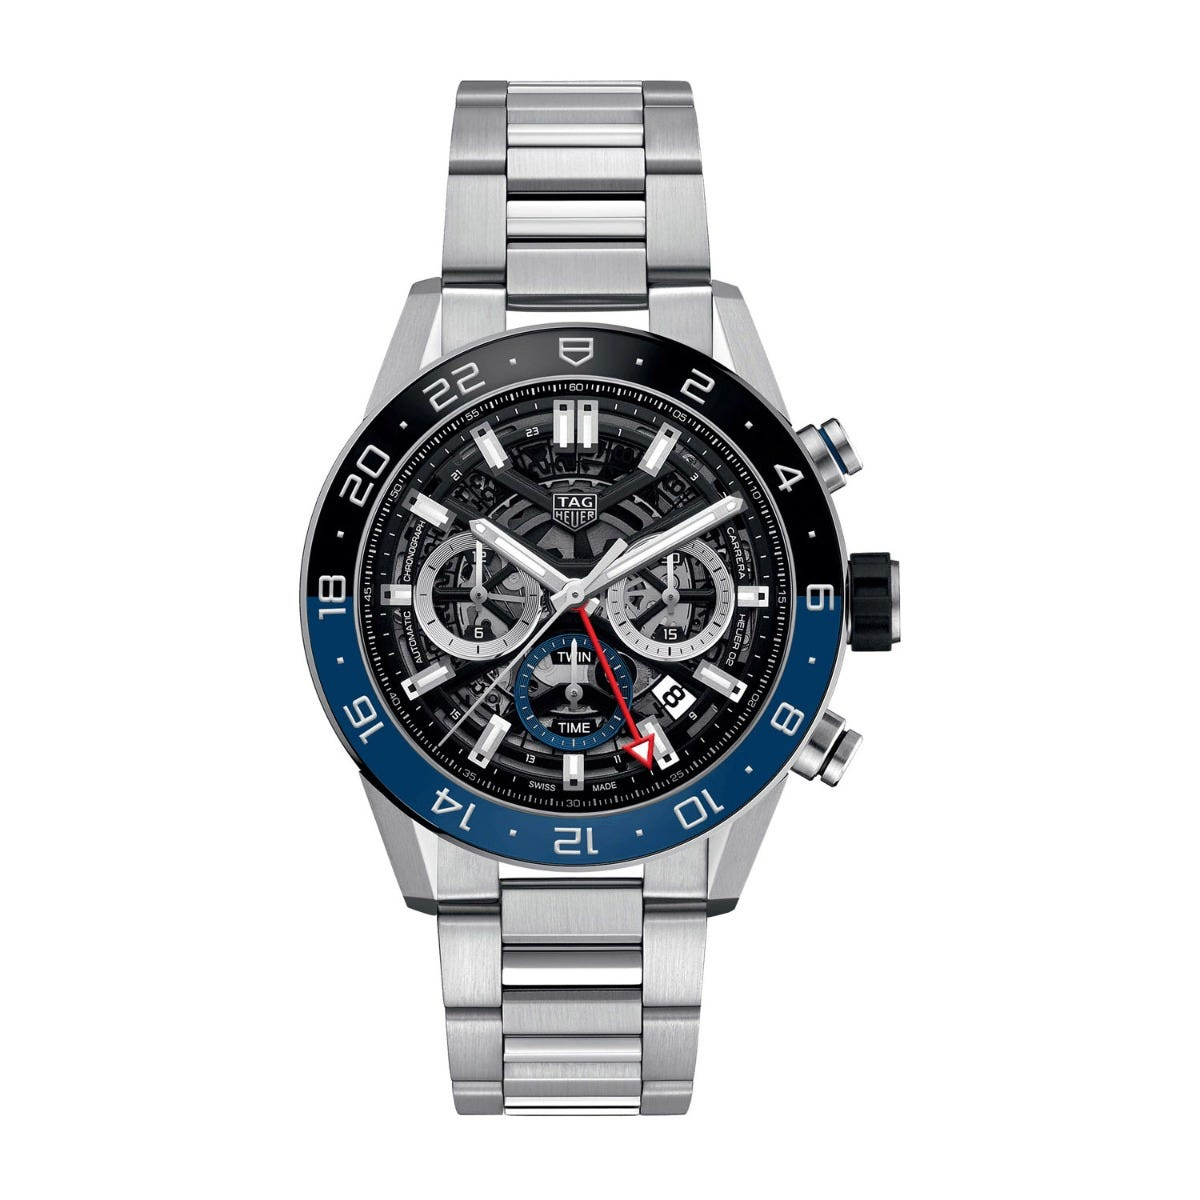 Tag Carrera 02 Skeleton Black Blue Bezel Dial Stainless Steel 45mm Mens watch